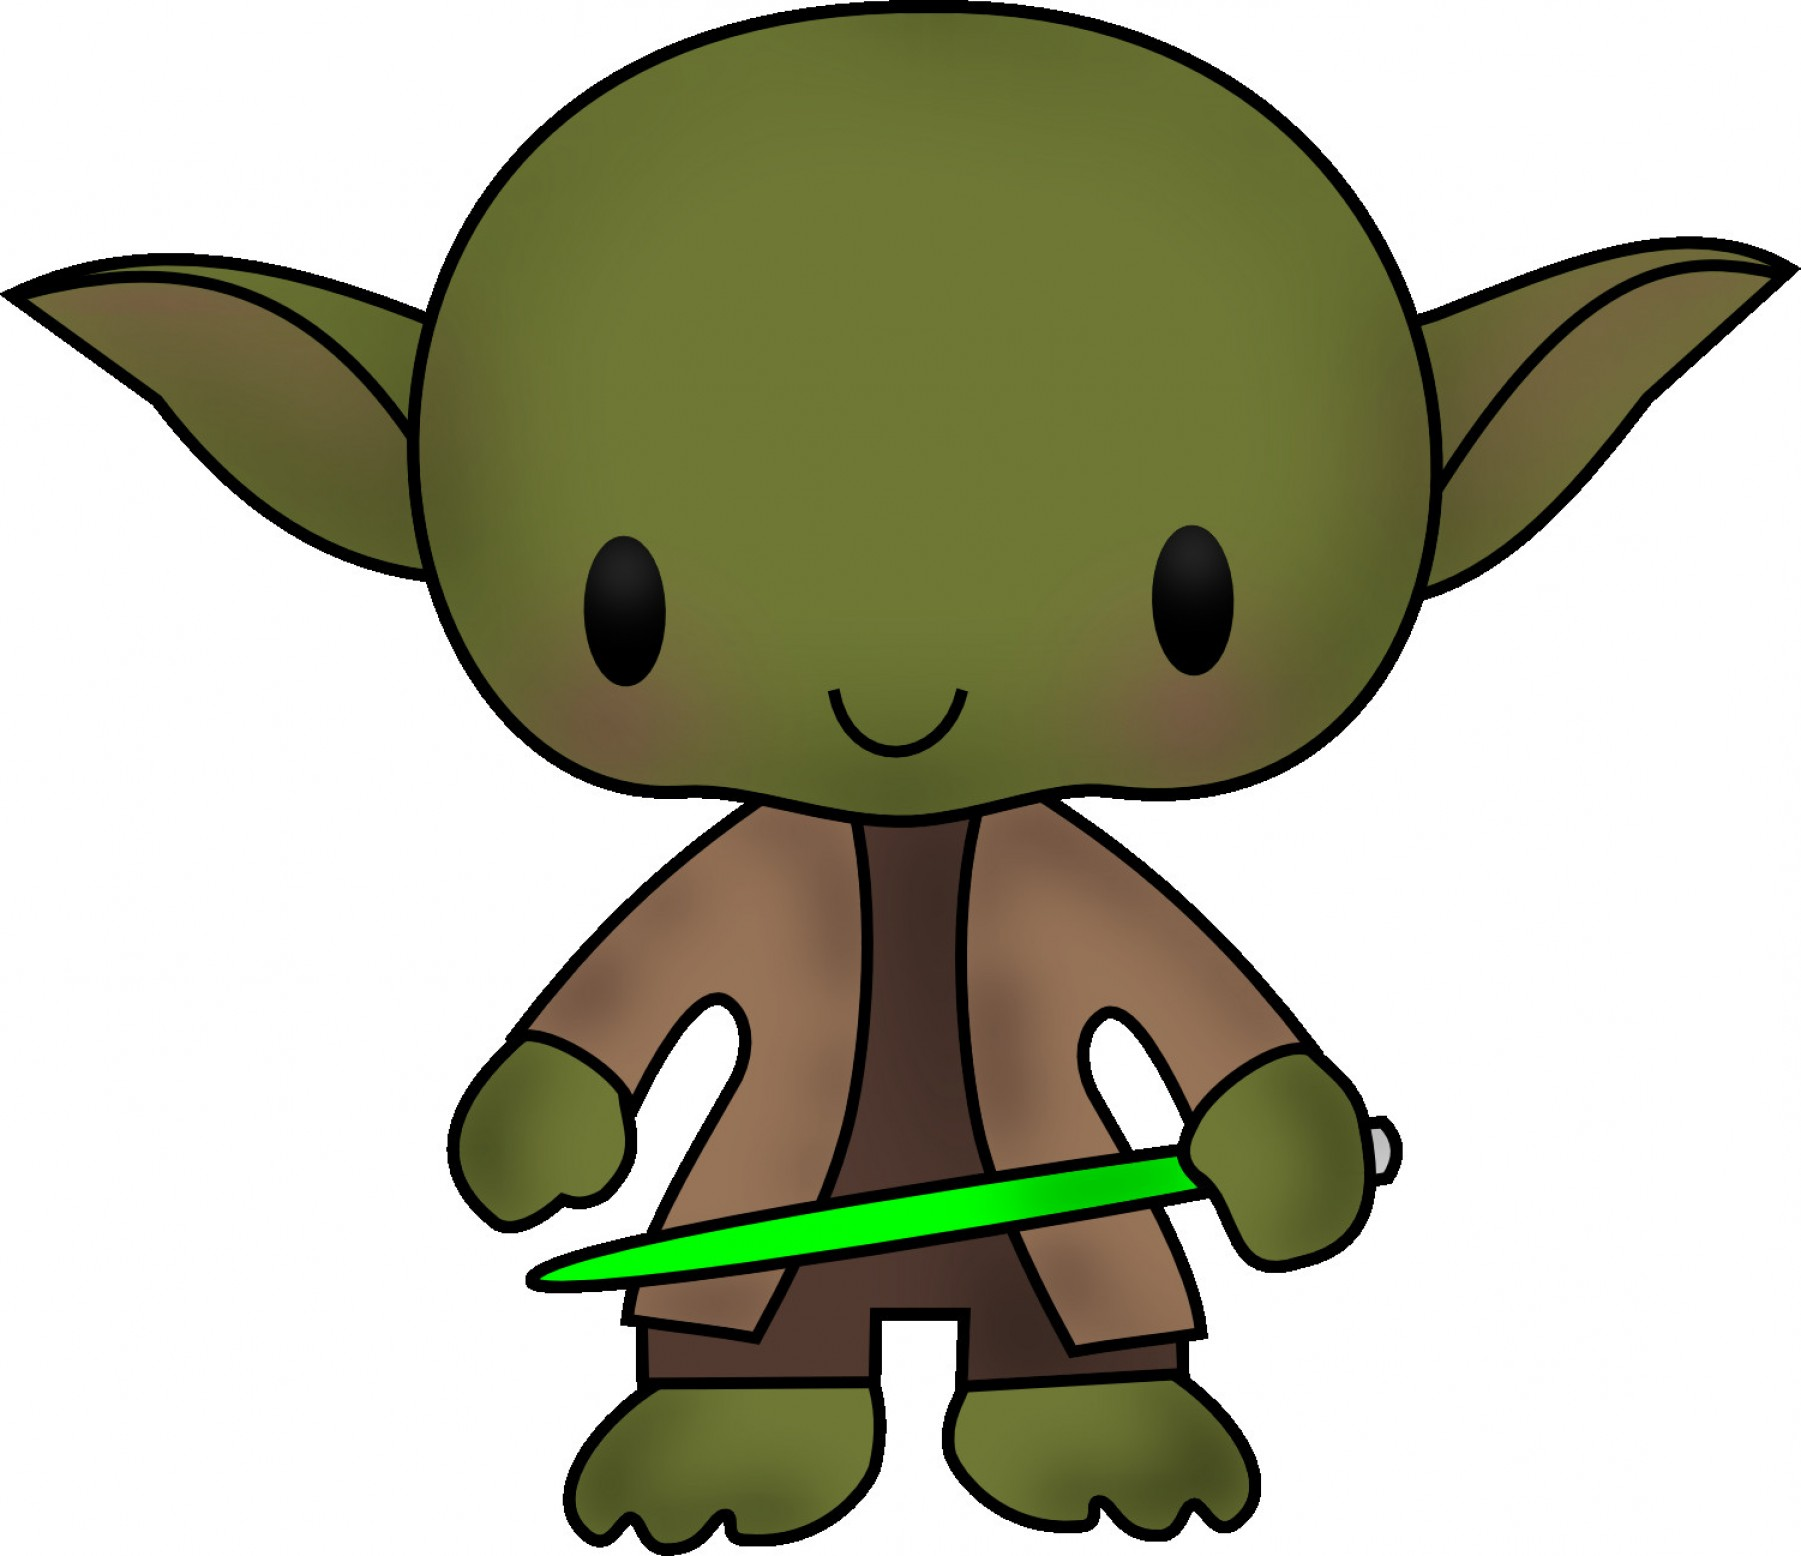 yoda clipart at getdrawings com free for personal use yoda clipart rh getdrawings com yoda clip art black and white yoda clip art free